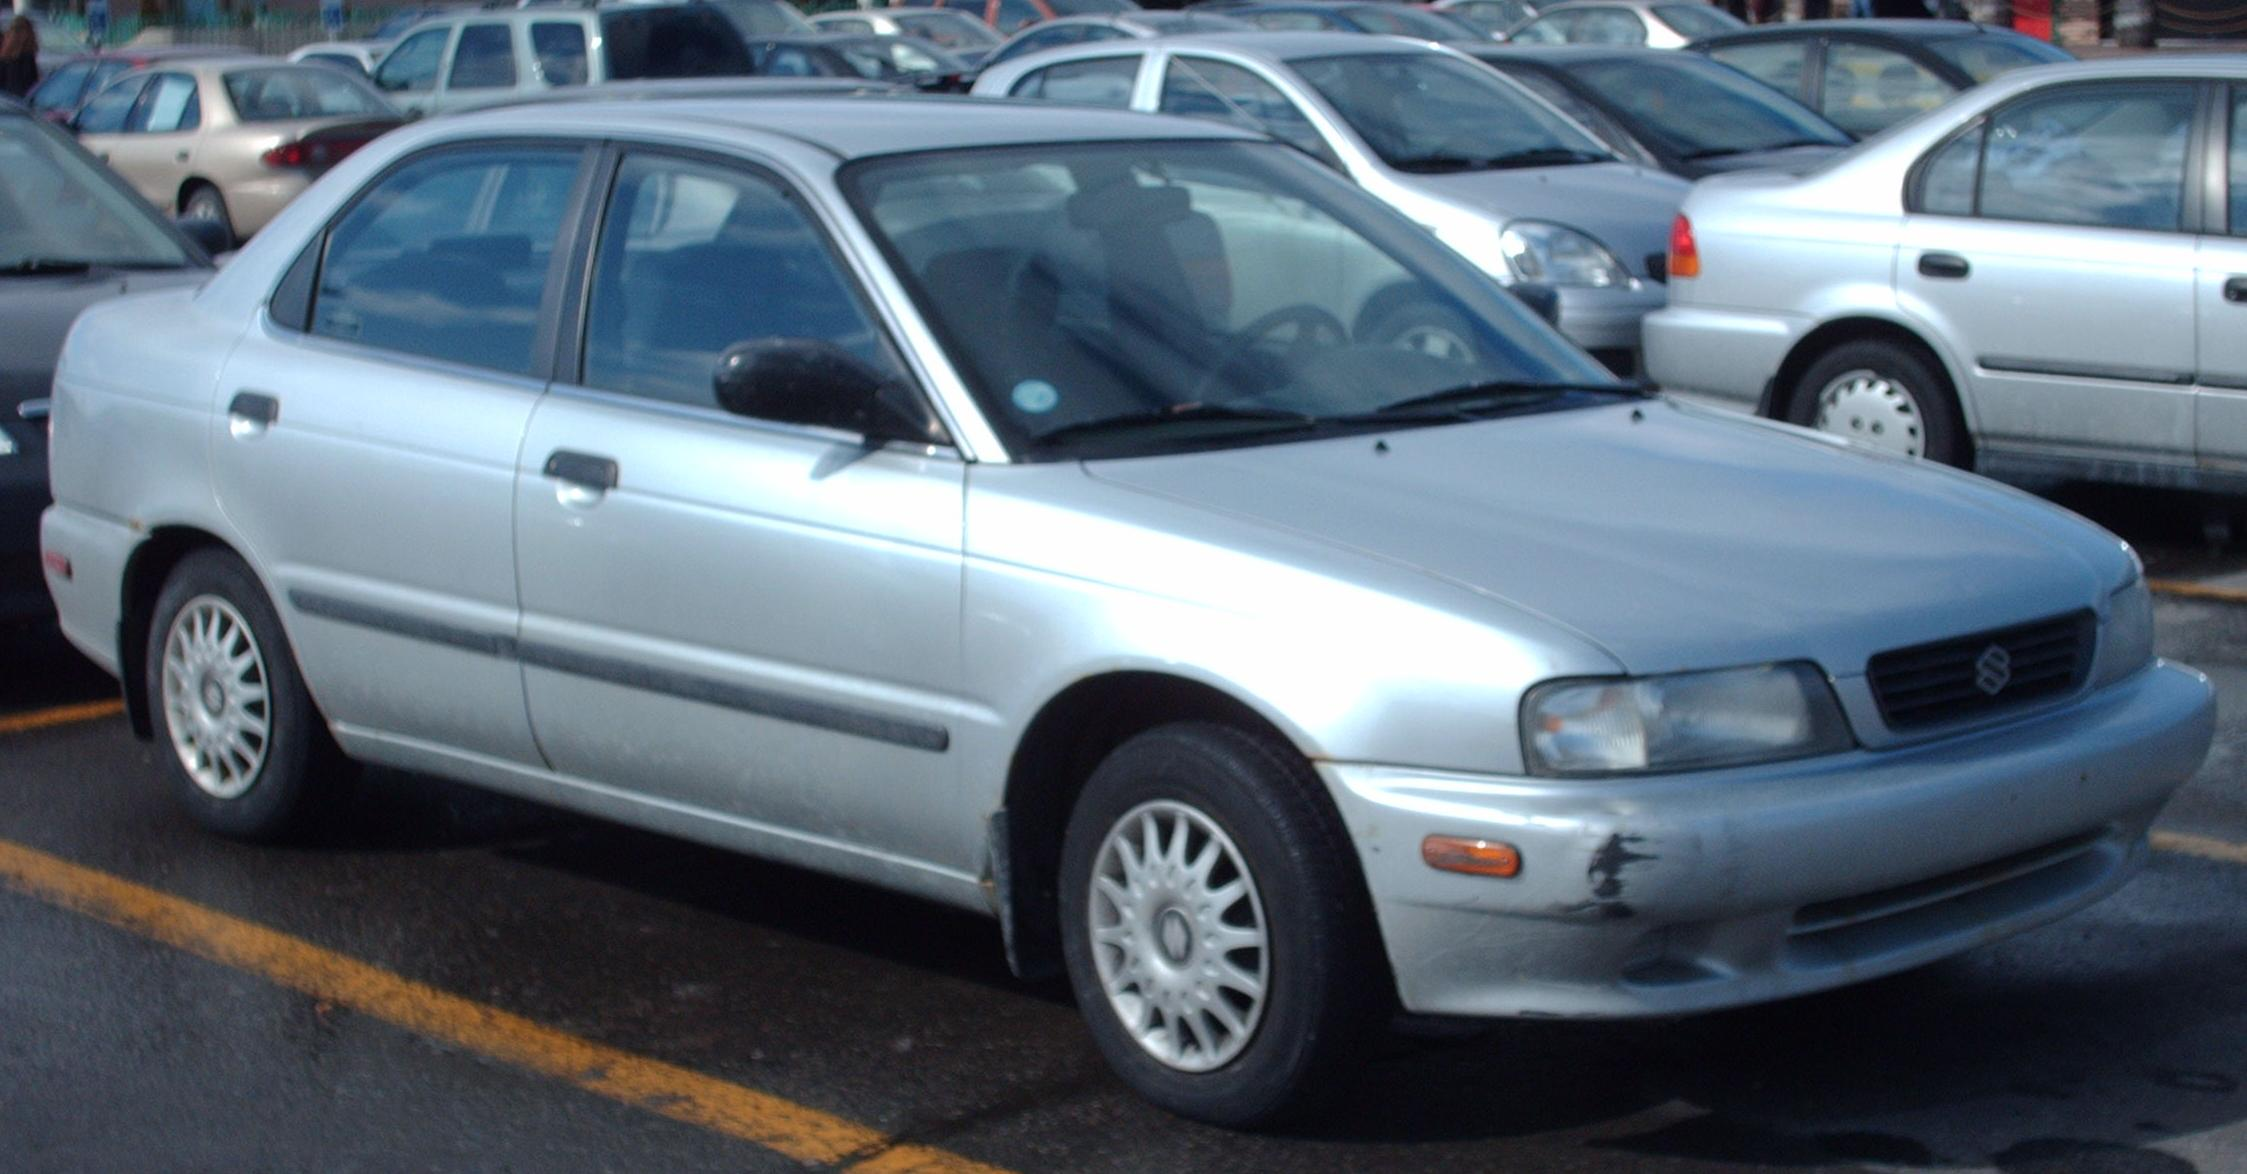 Suzuki Baleno I 1995 - 2002 Station wagon 5 door #7